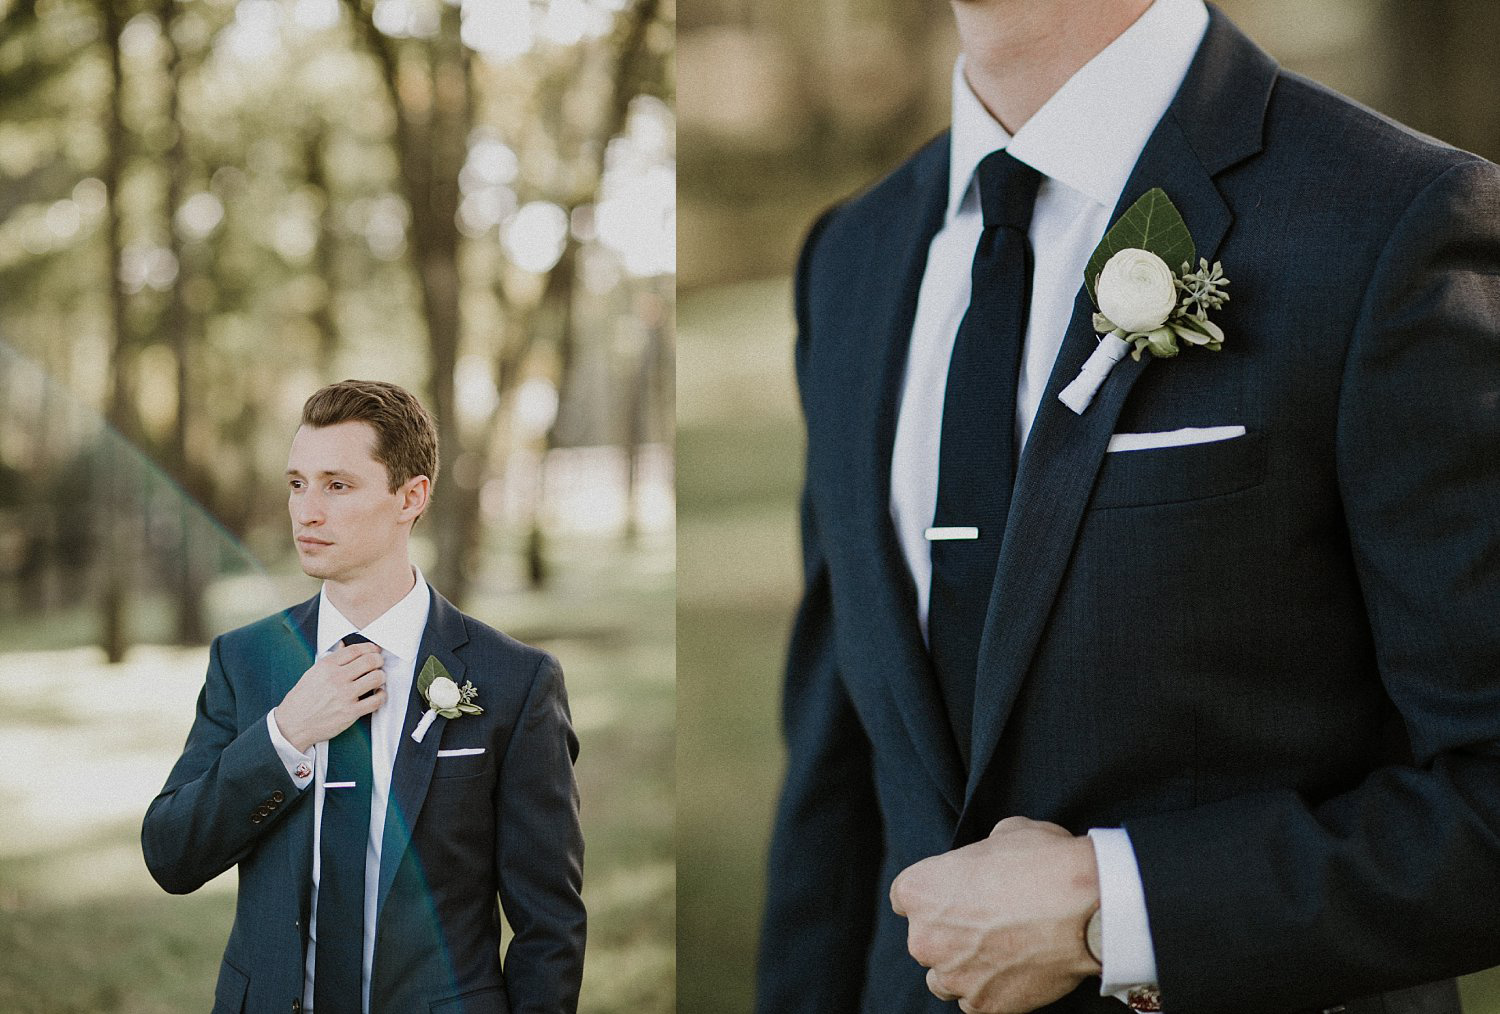 Groom wearing a white ranunculus and black tie with a tie clip at this outdoor wedding